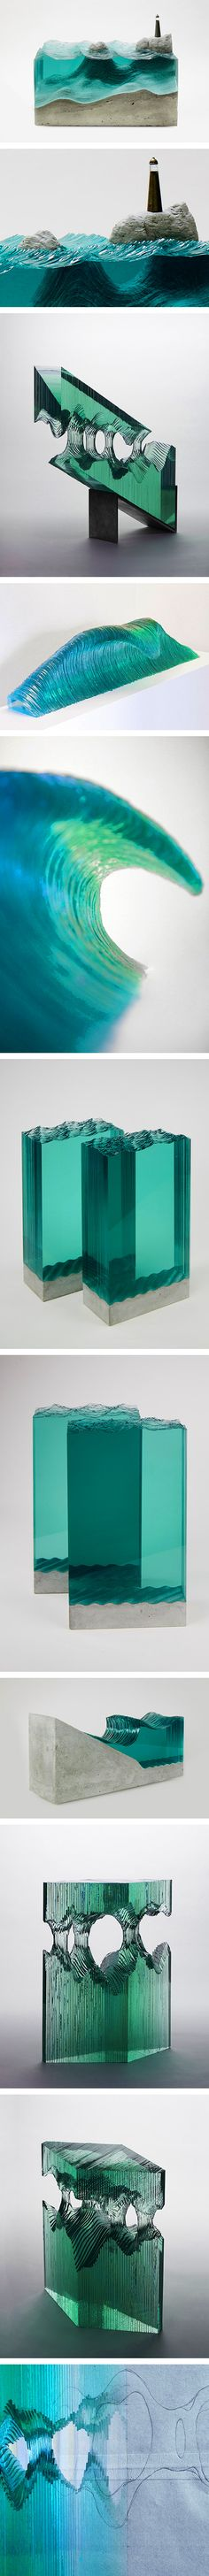 Self-taught artist Ben Young creates stunning sculptures of ocean waves and watery landscapes by layering multiple sheets of hand-cut glass. Young, who also surfs and builds boats professionally, is inspired by his upbringing in New Zealand's beautiful Bay of Plenty. His affinity for the sea is clear in his extraordinary glass works, which portray both the gentle tranquility and the powerful force of Mother Nature's tides.